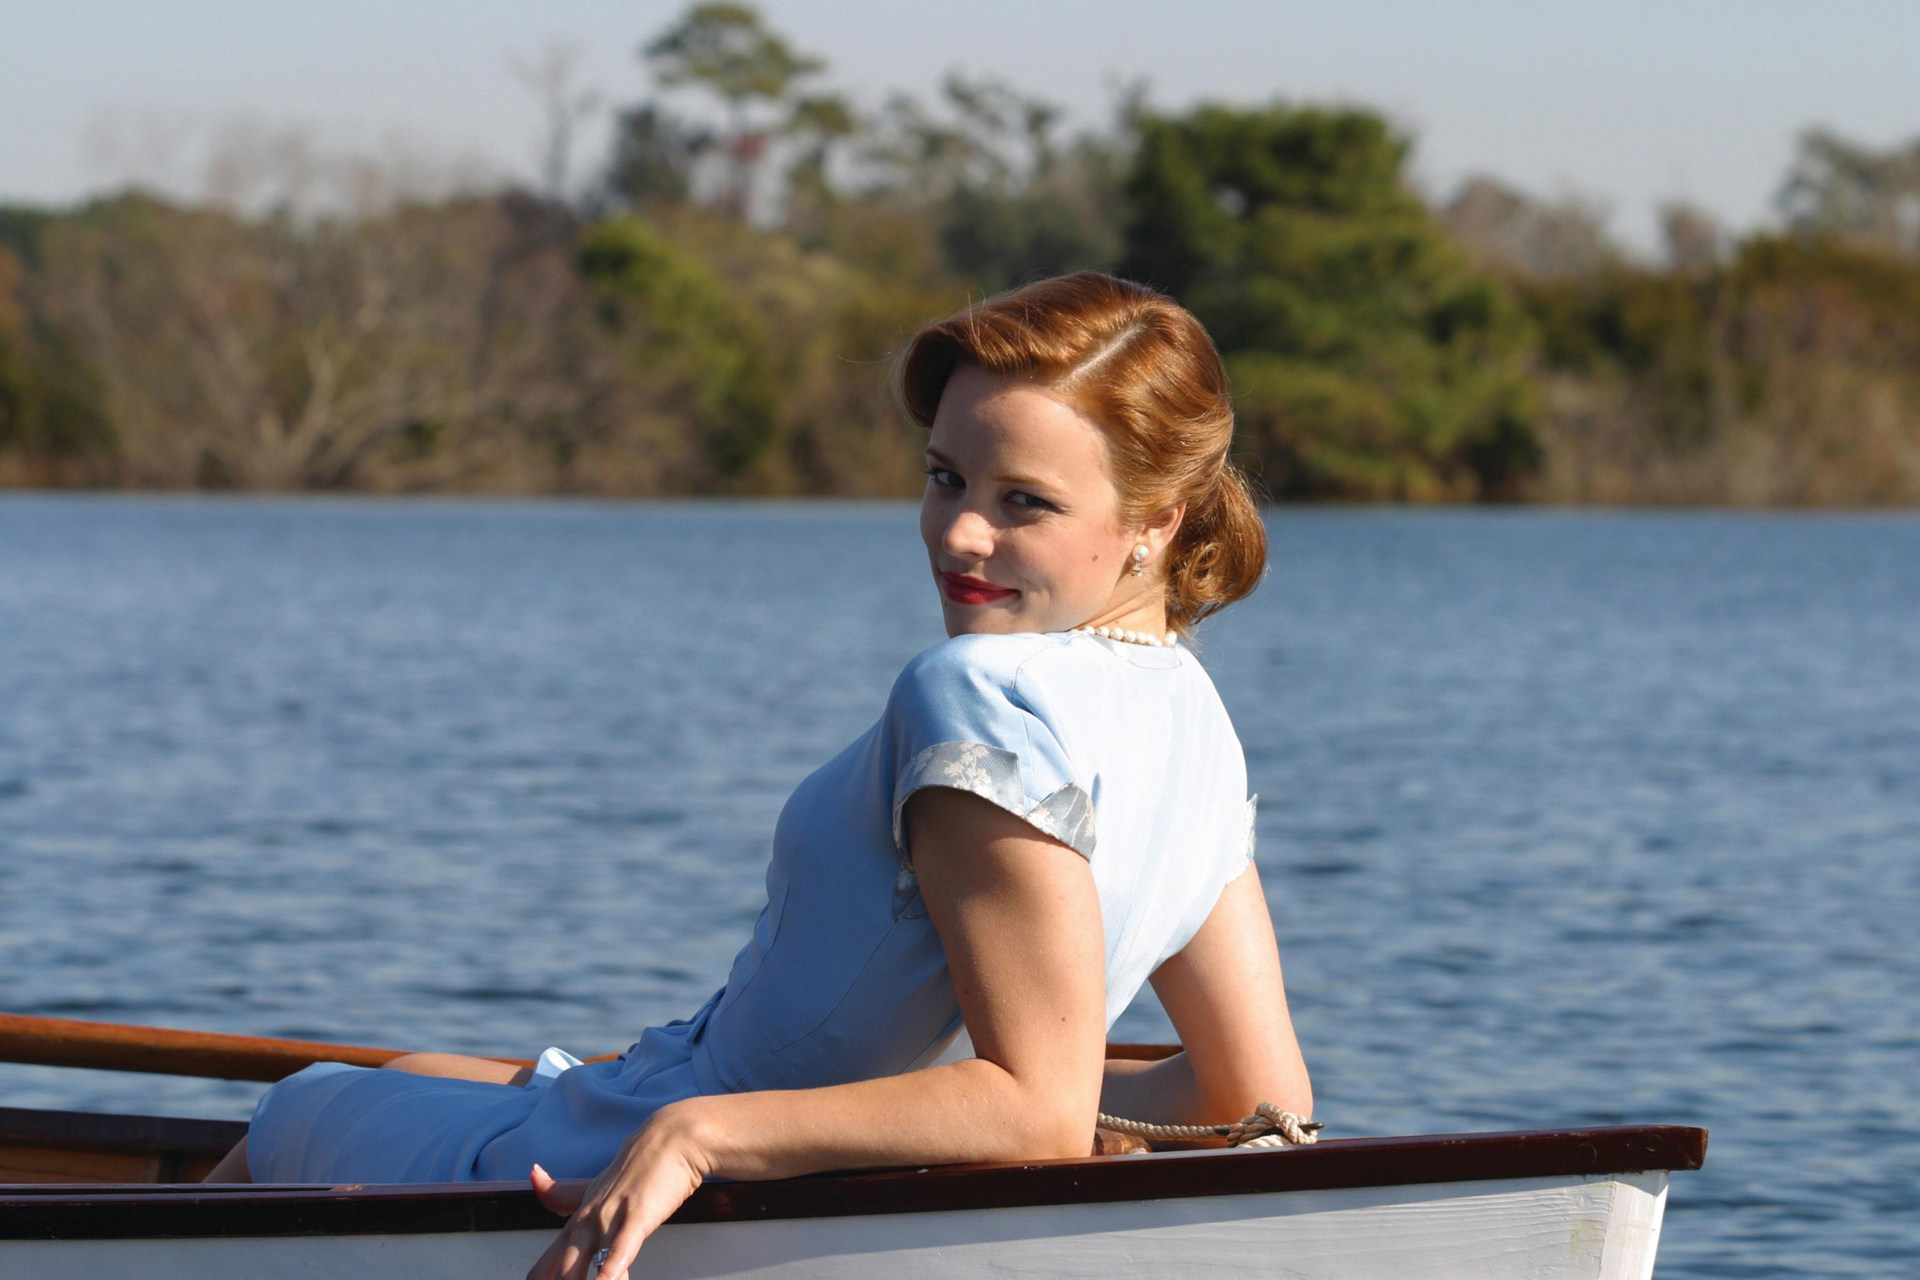 The Notebook Events Coral Gables Art Cinema